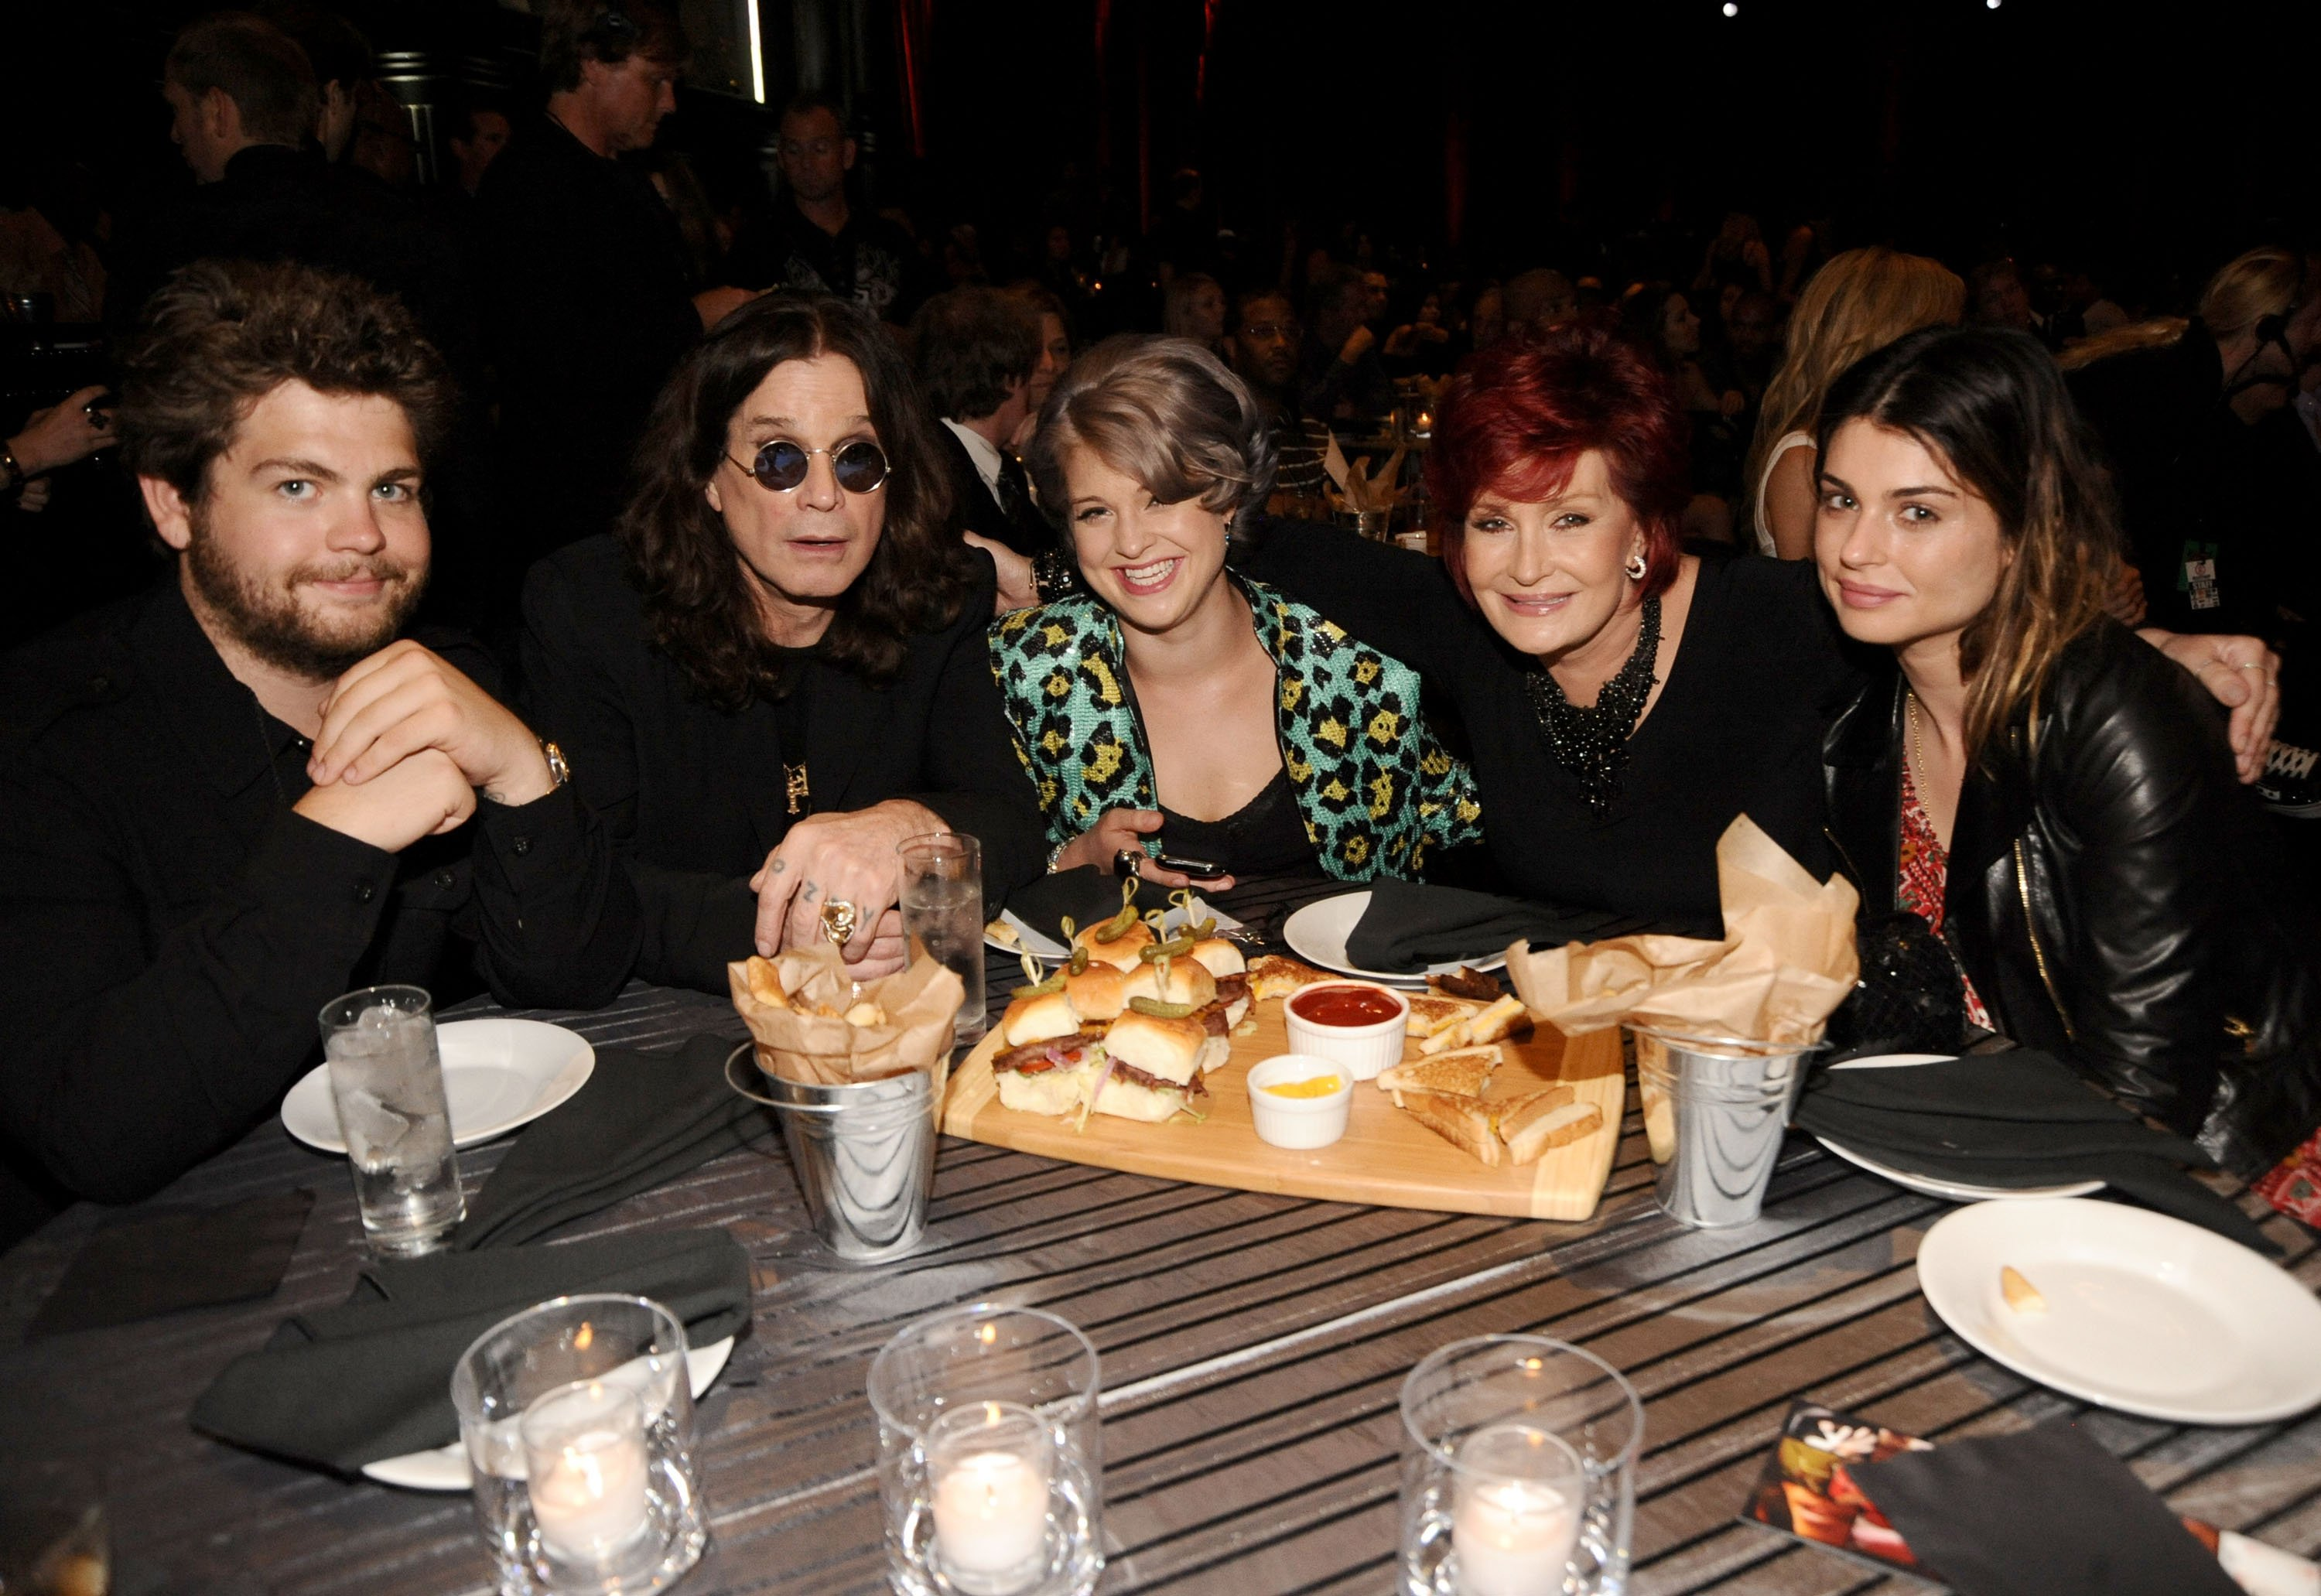 The Osbournes during a 2010 awarding event in Los Angeles. | Photo: Getty Images